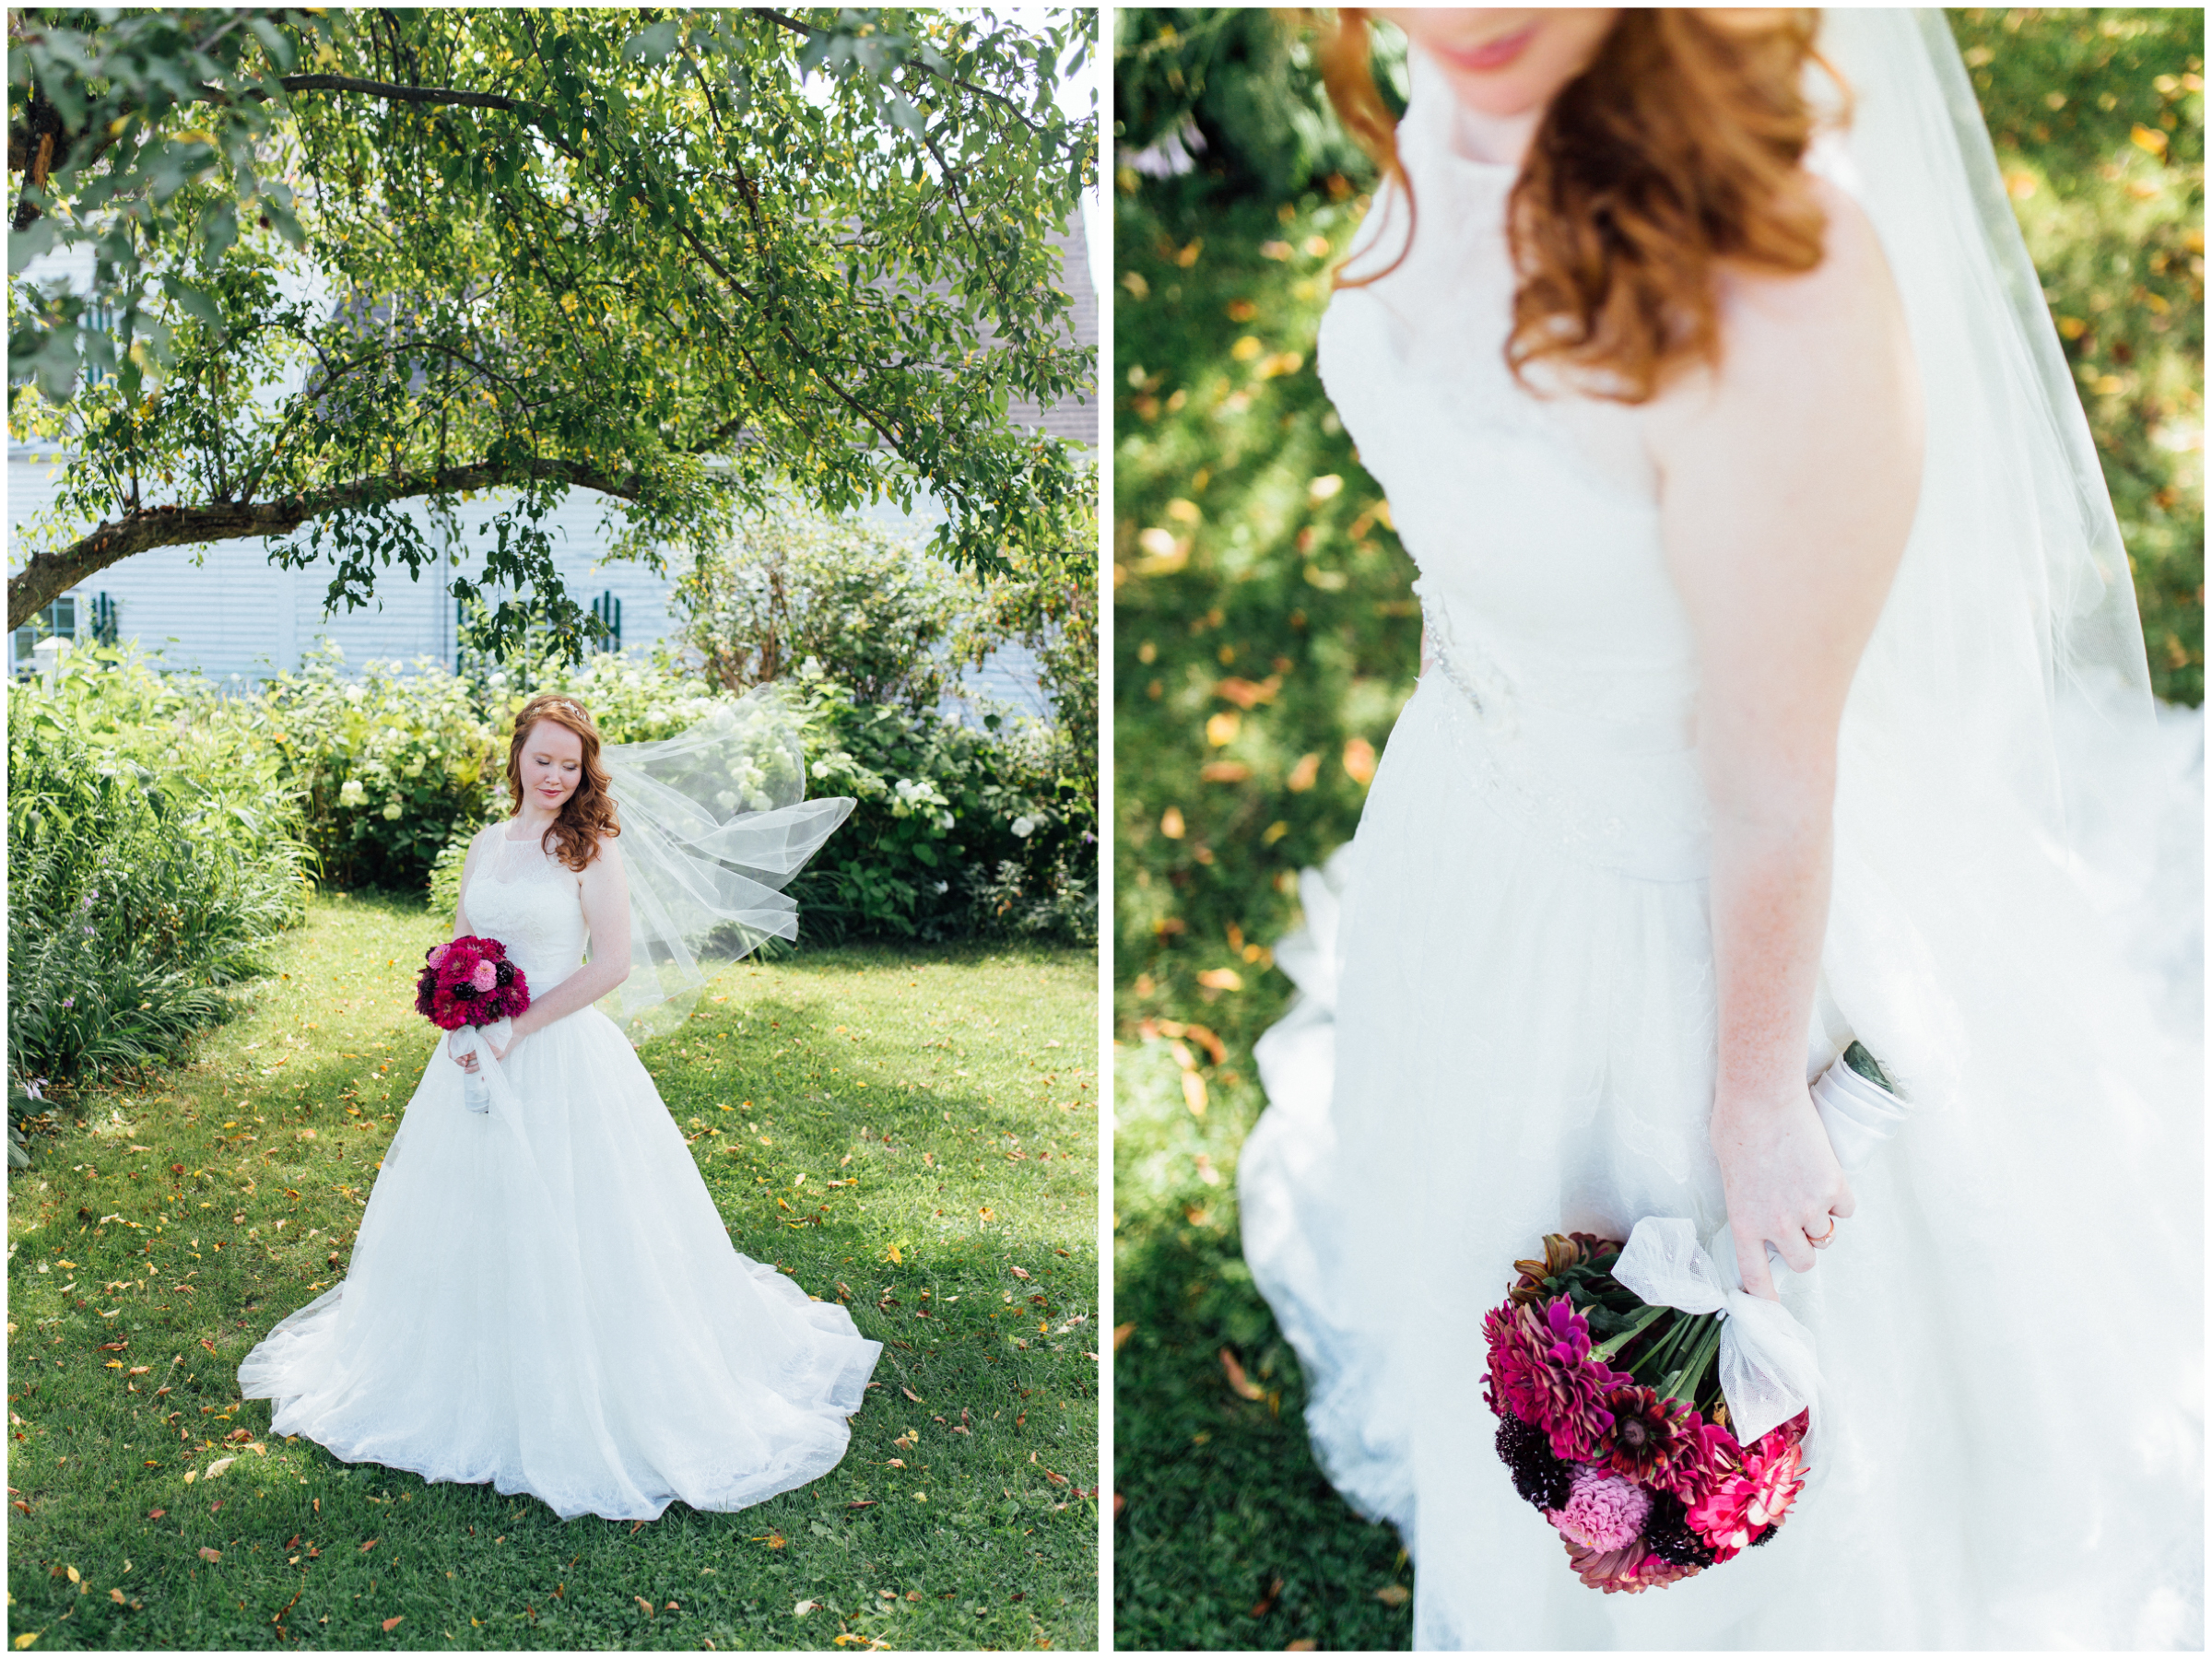 Beautiful bride portraits in Vermont